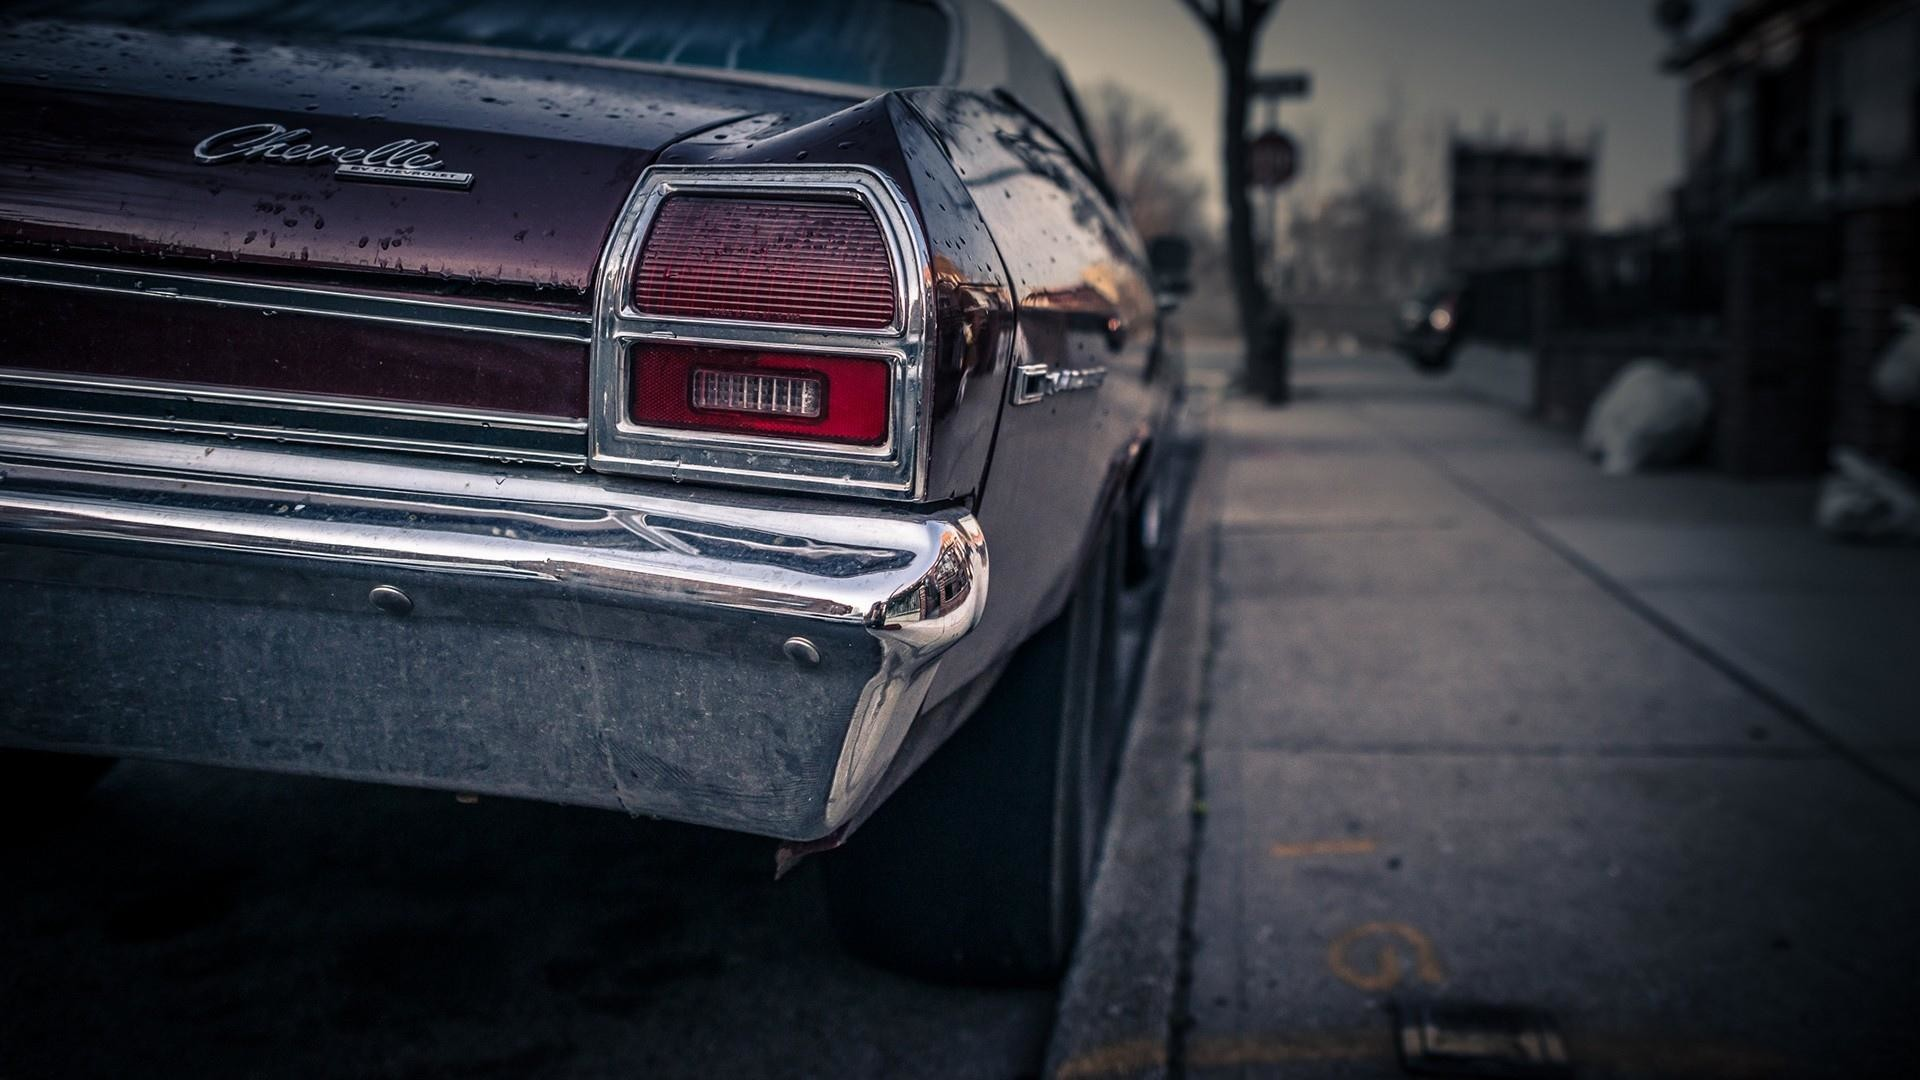 … chevrolet chevelle cool wallpapers download …